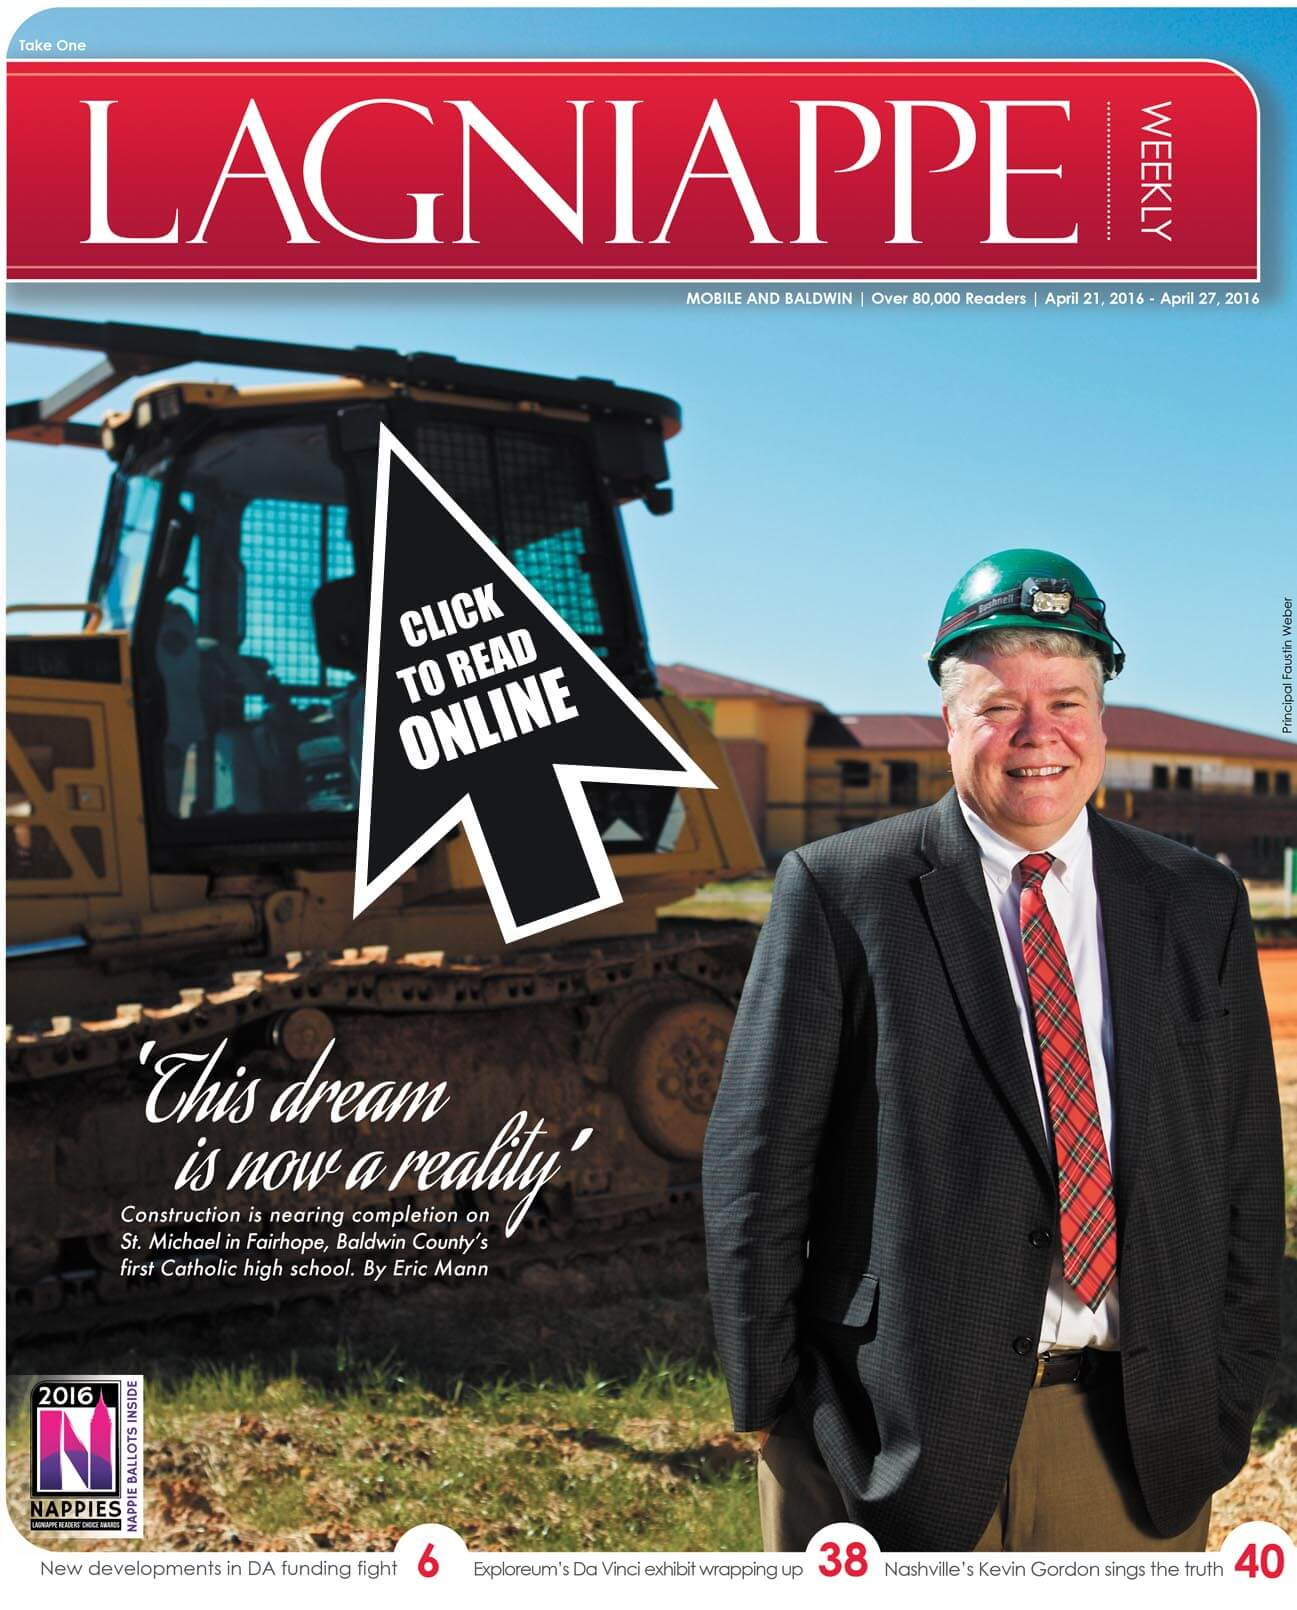 Lagniappe: April 21- 27, 2016